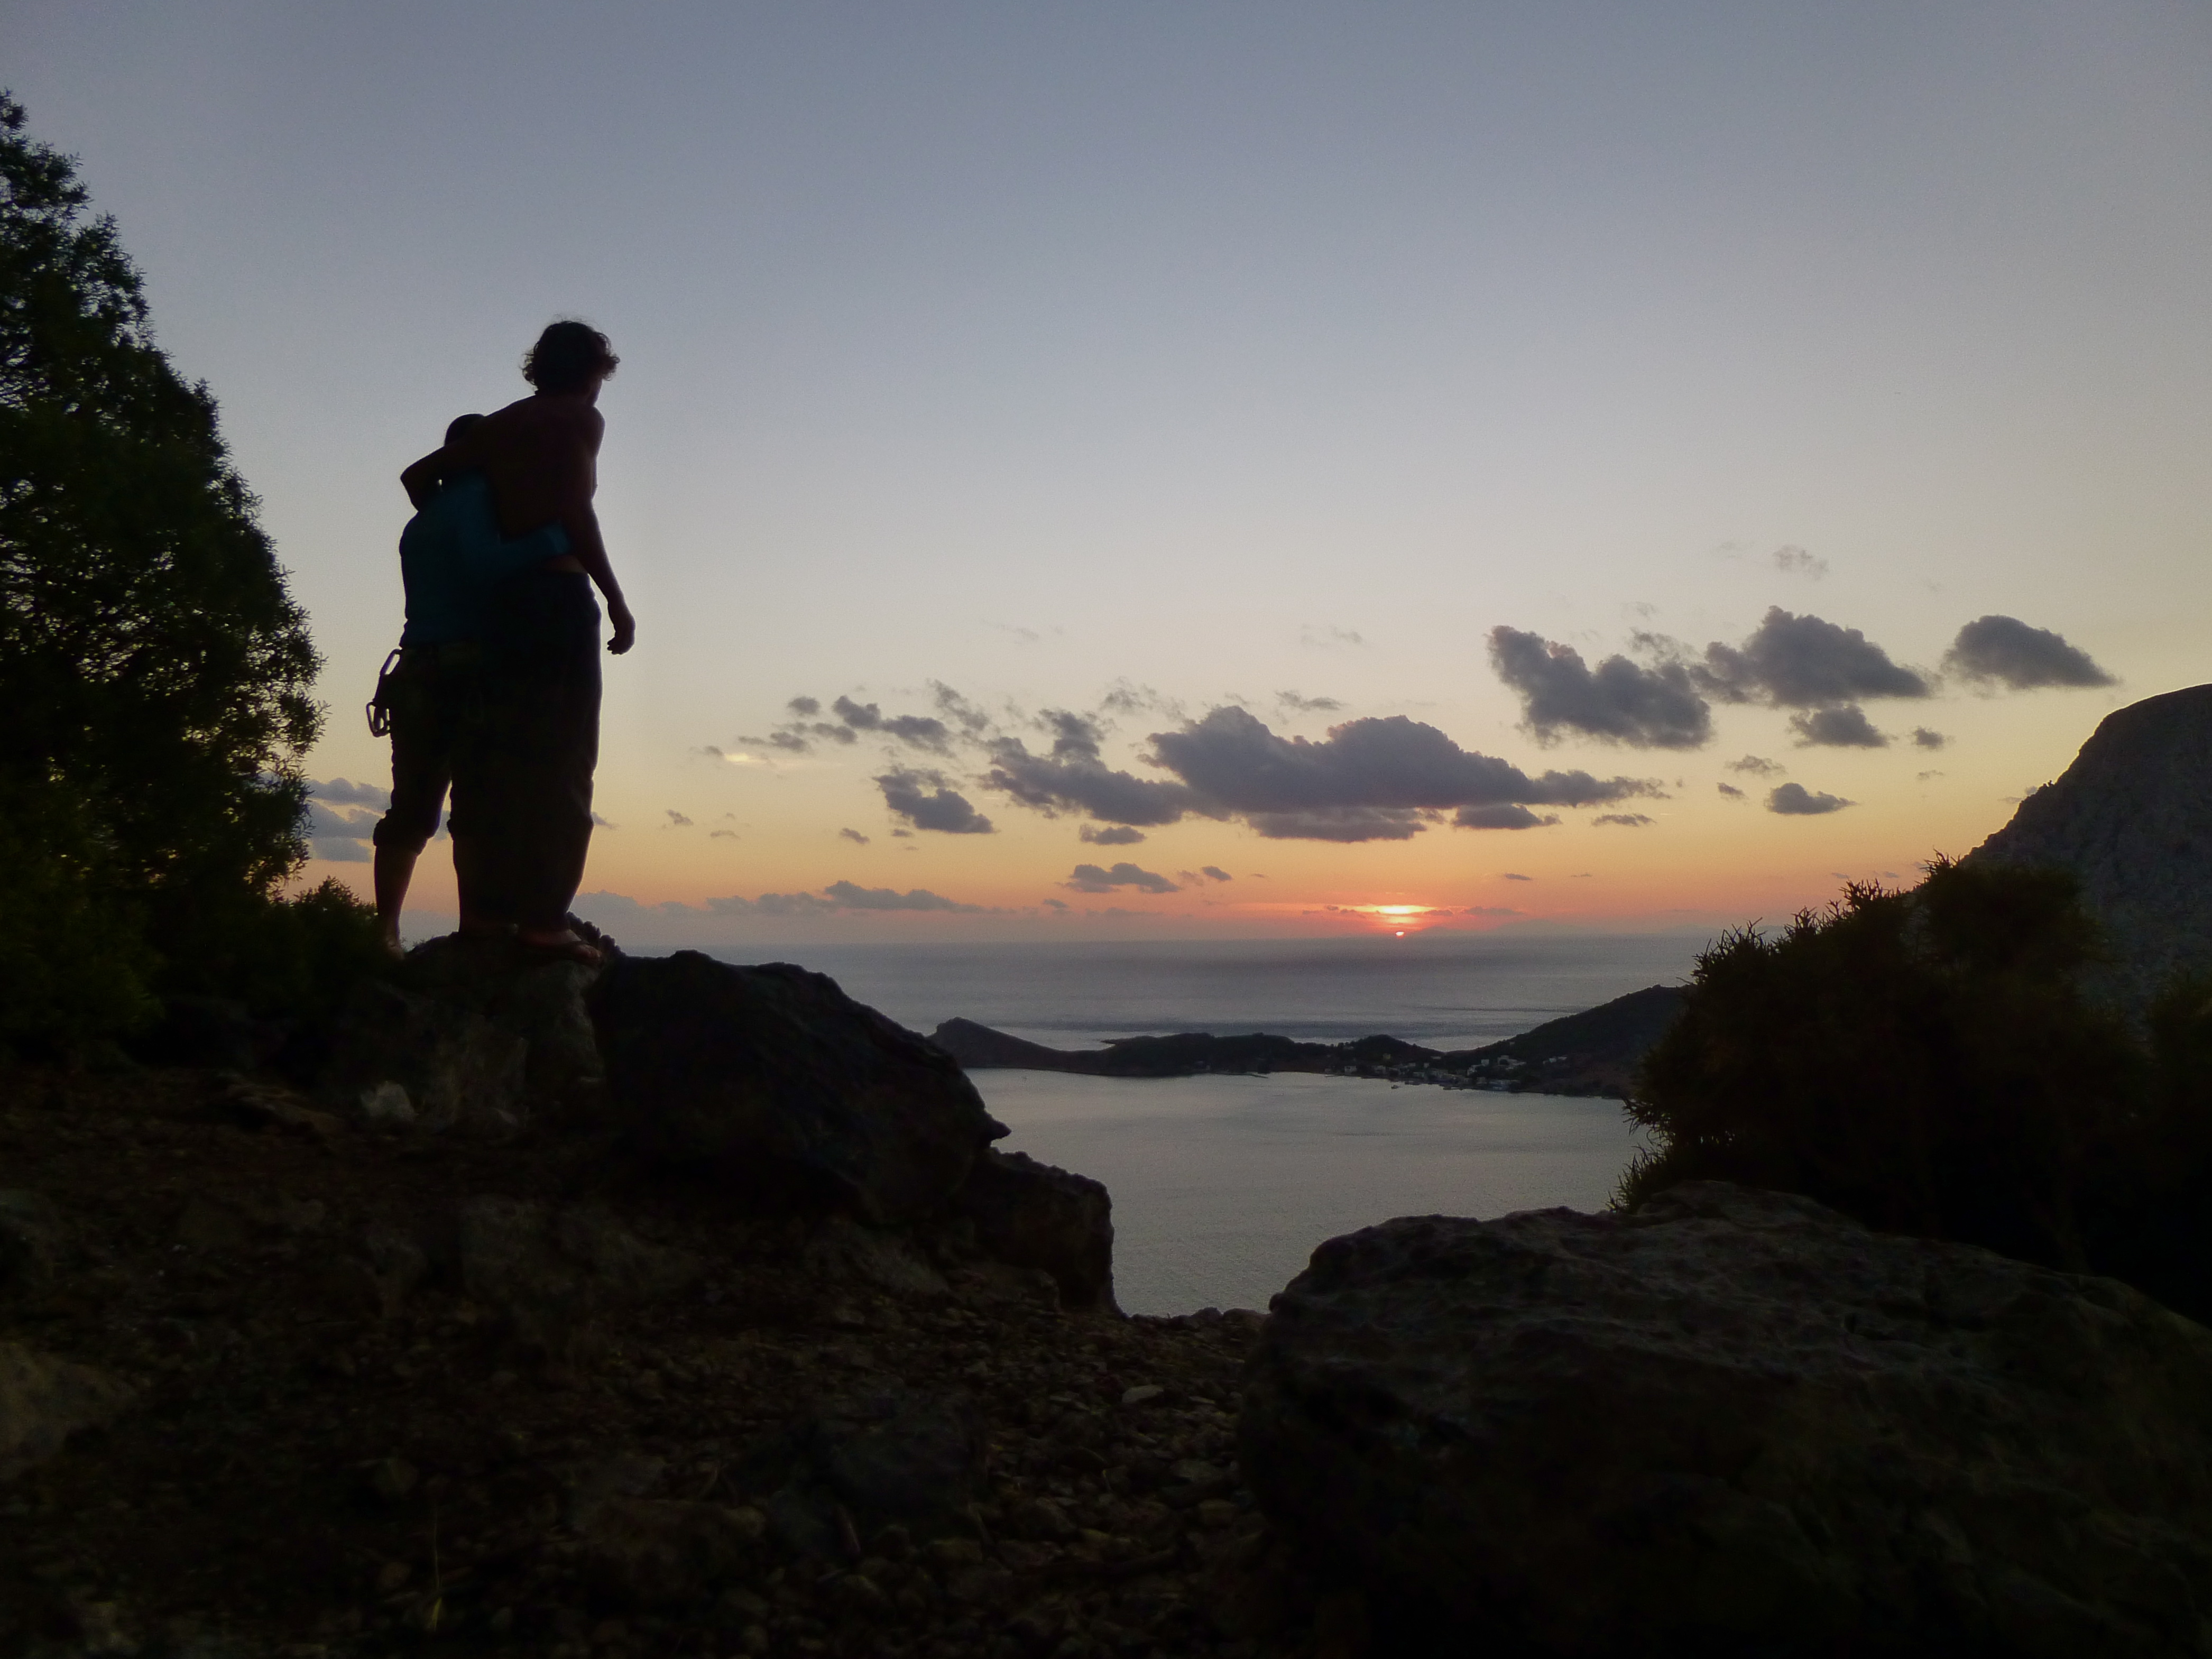 Sunset over from the cliffs of Kalymnos